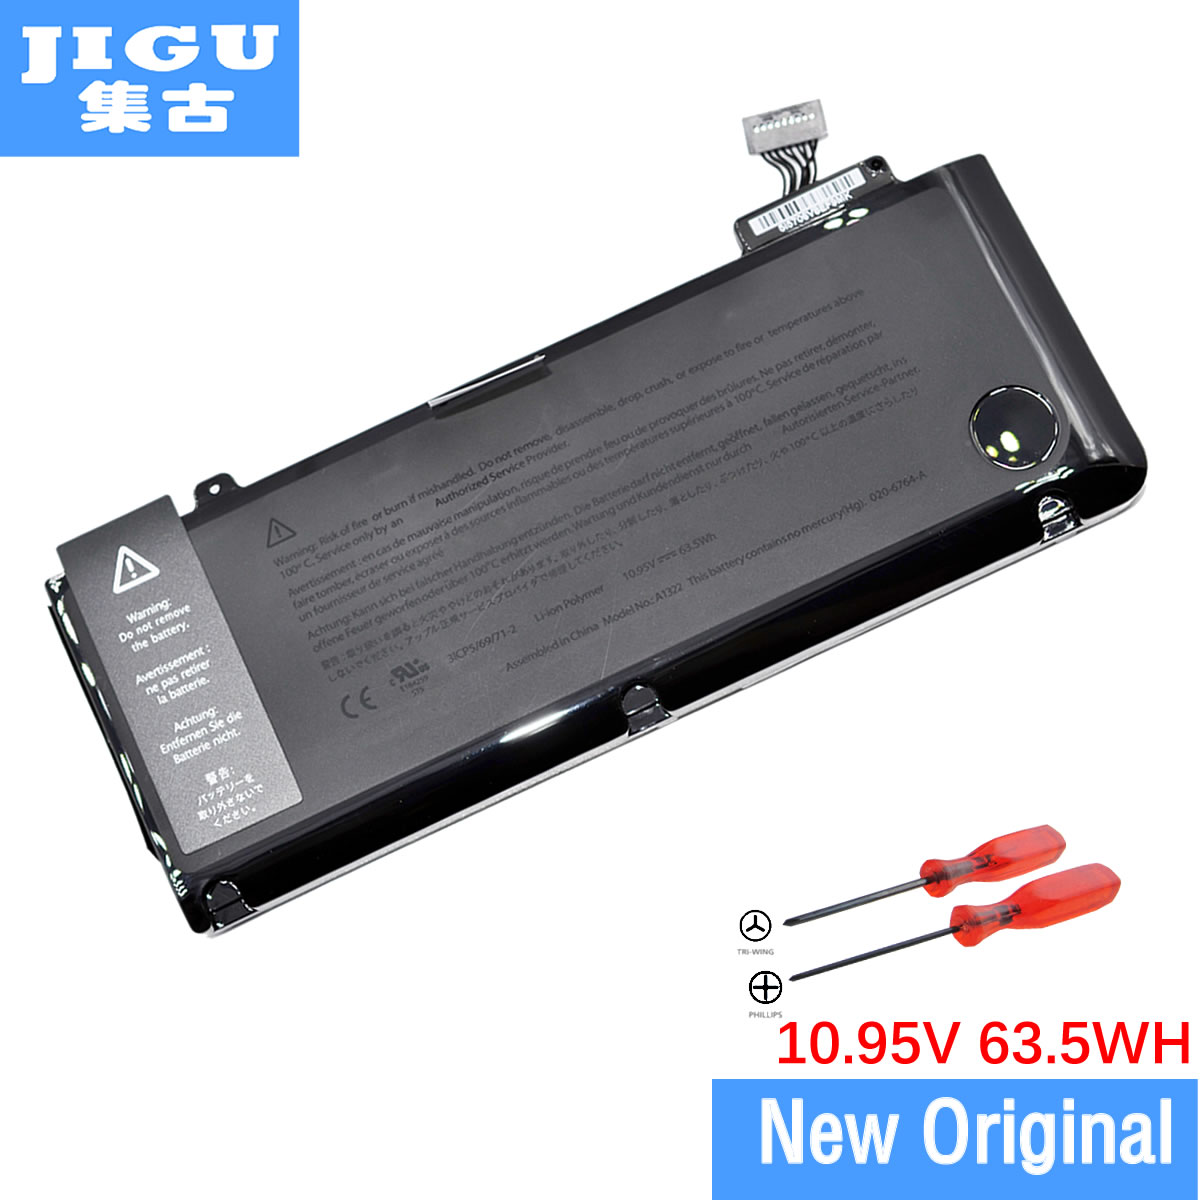 JIGU New Genuine Original A1322 Battery For Apple for Macbook Pro 13 Unibody A1278 2009 2010 2011 2012 Version 10.95V 63Wh original top case palmrest for macbook pro unibody 13 a1278 2011 2012 years